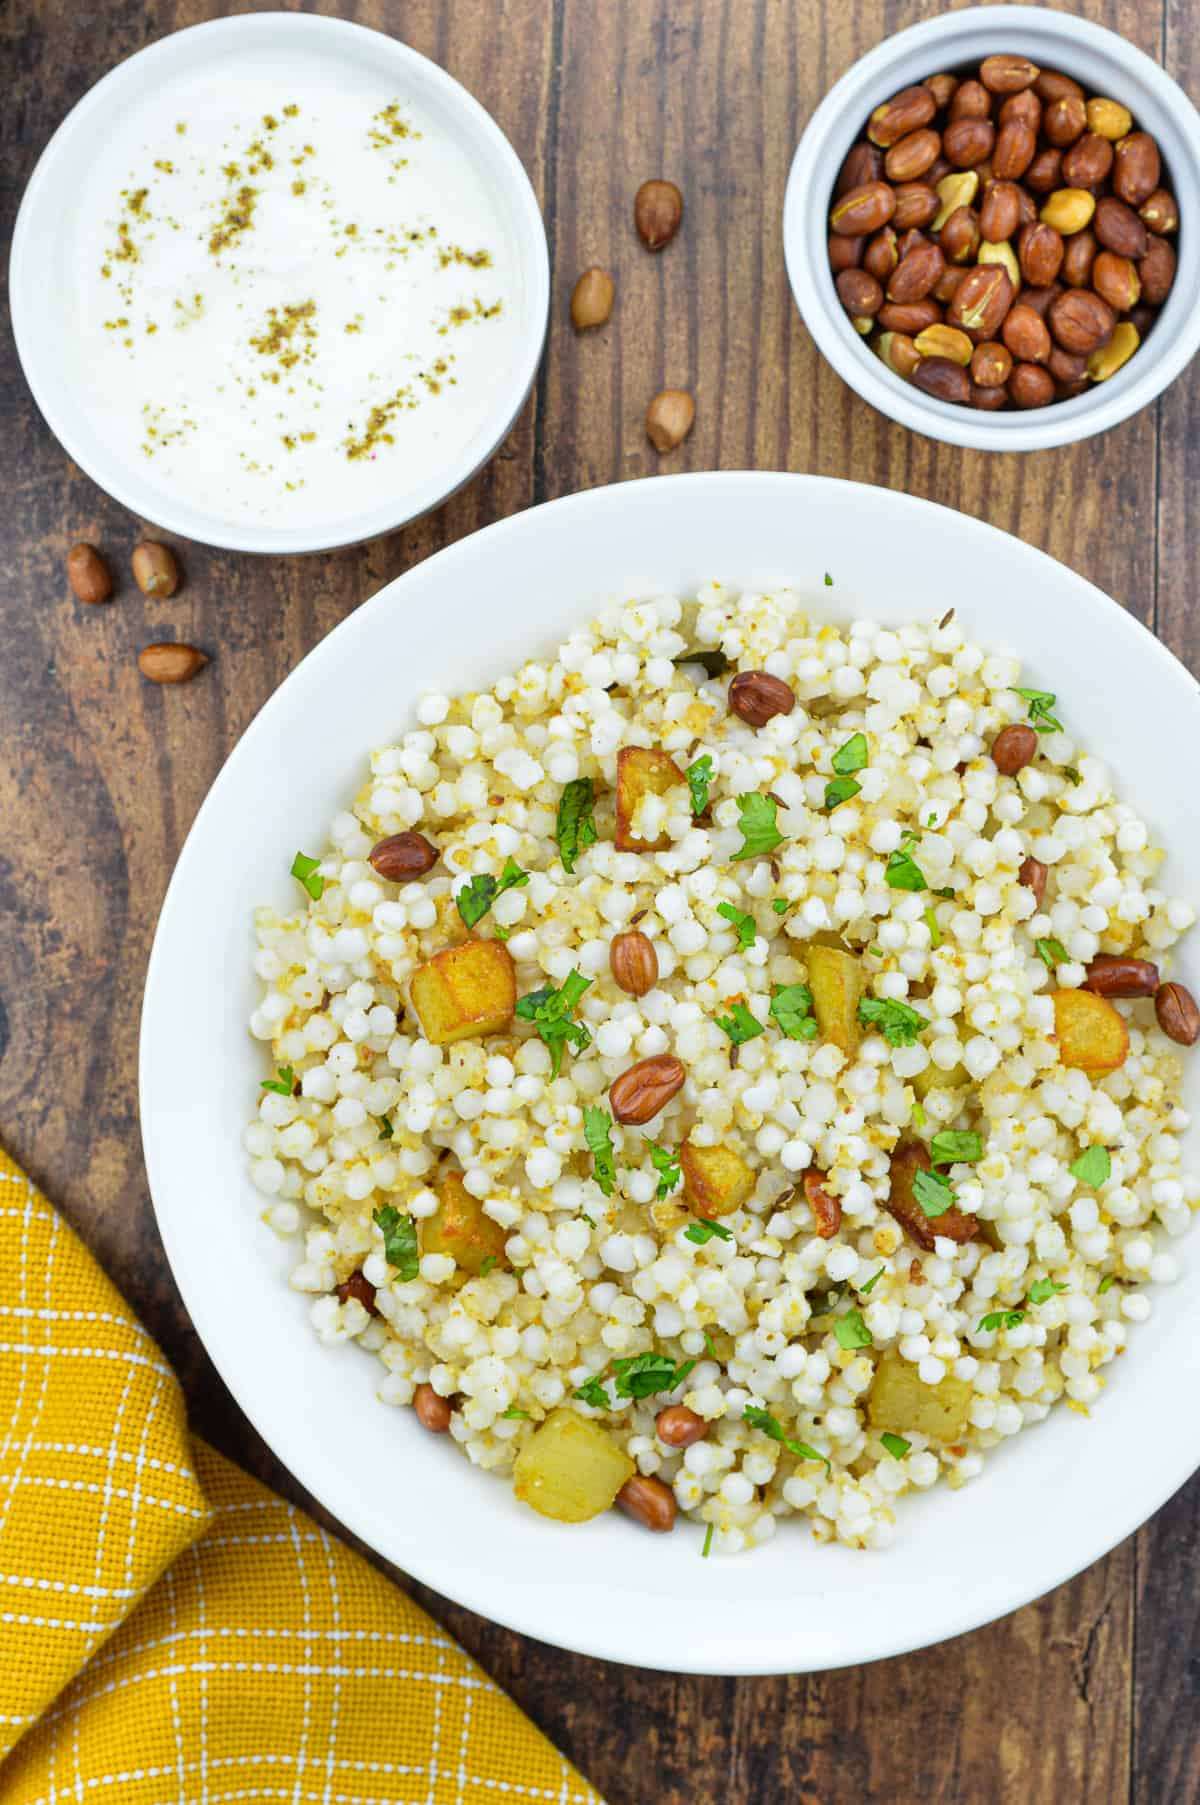 a plate full of sabudana khichdi, with a bowl of roasted peanuts, and a bowl of yogurt on the side